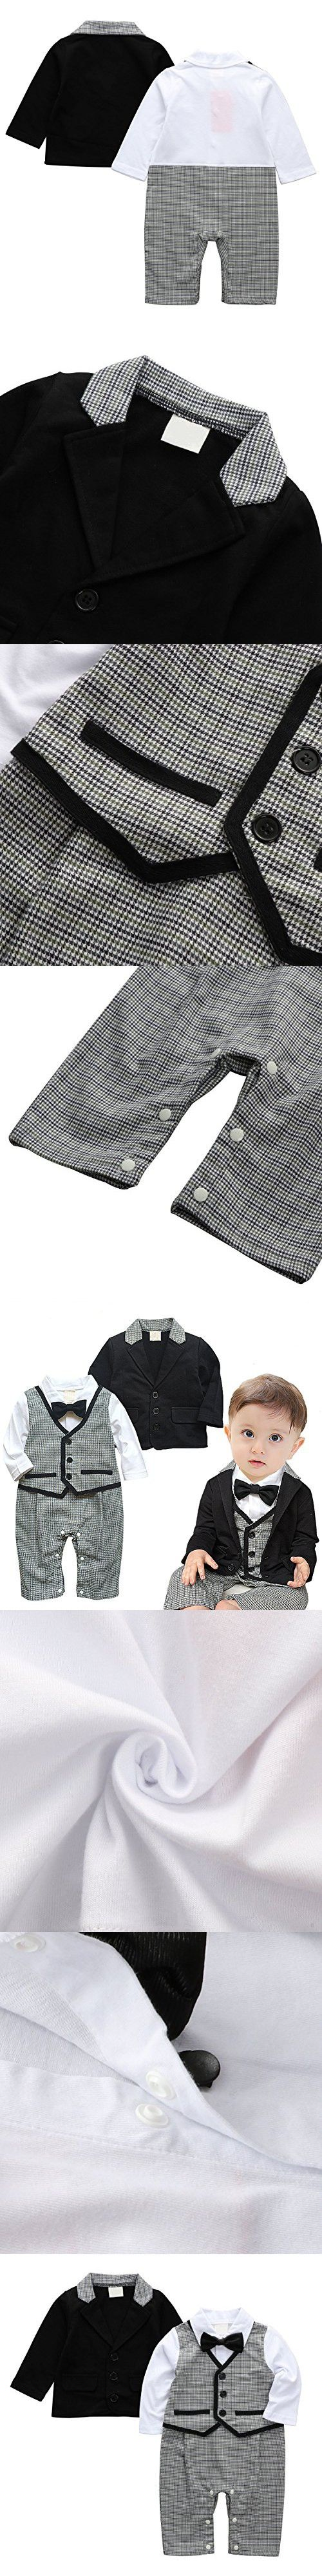 Baby Boy Tuxedo, 2pcs Toddler Suit Set Outfit Clothes with Bowtie & Long Sleeve Coat